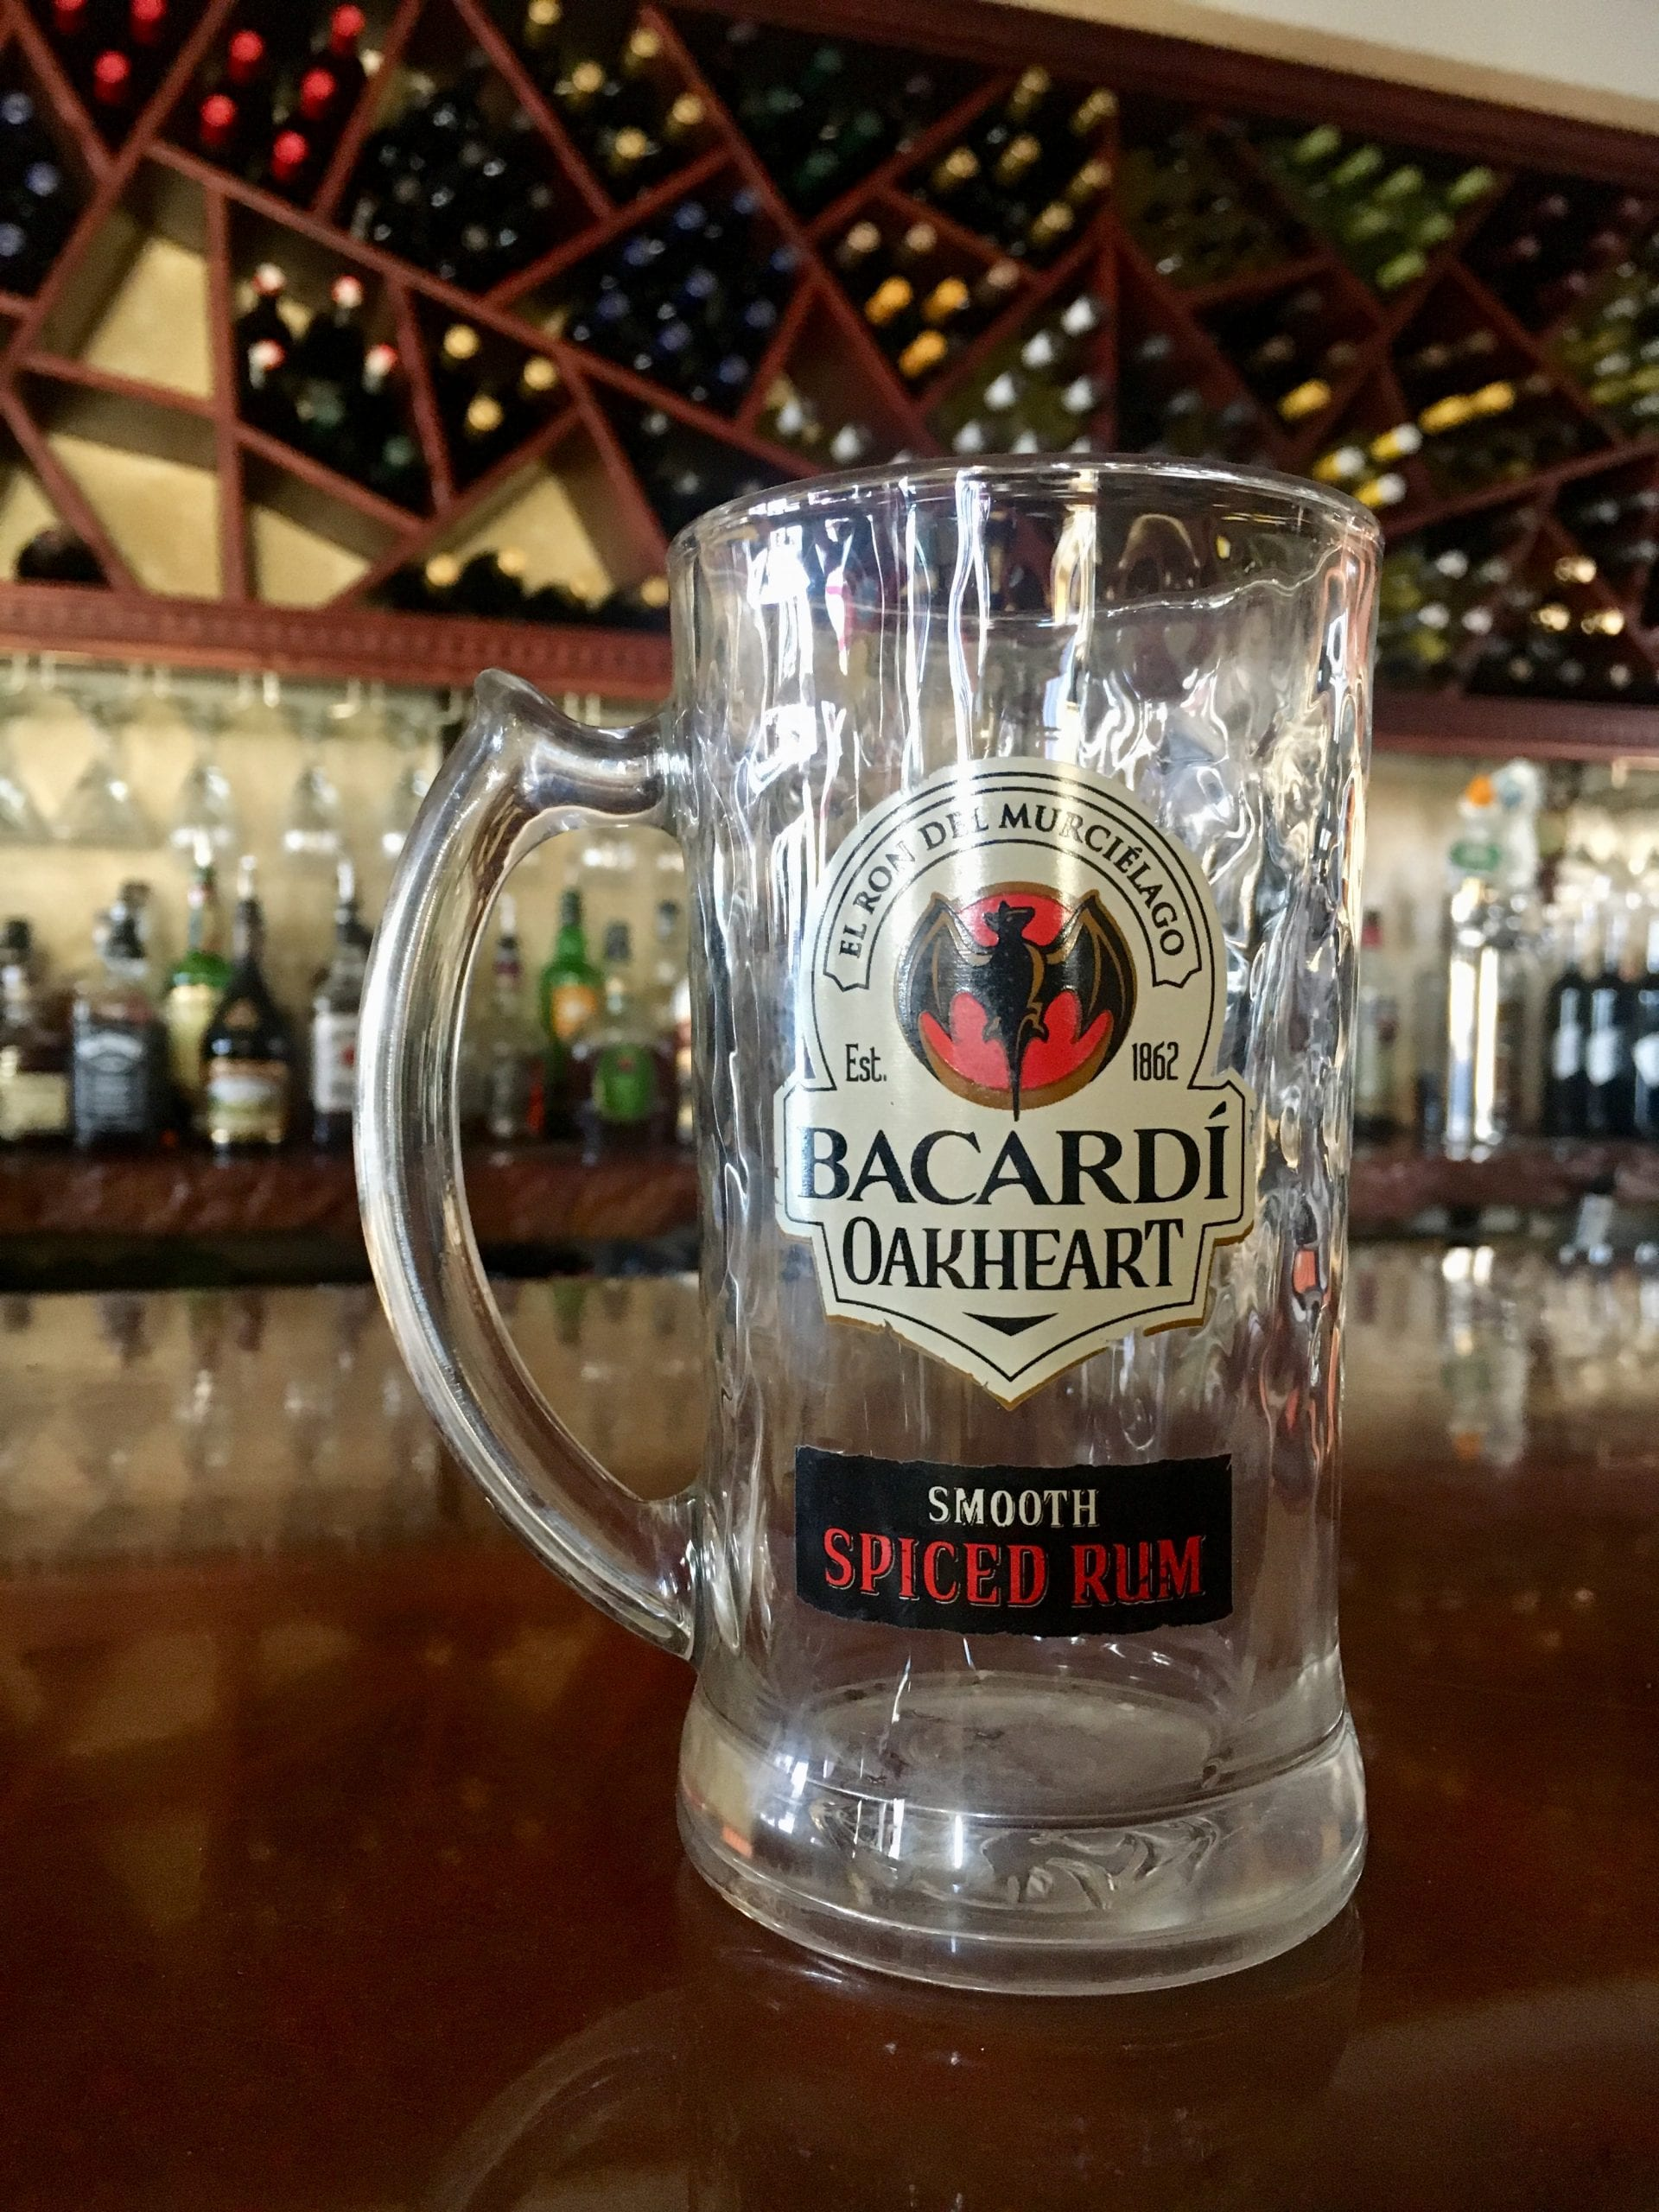 Free mug when you come to The Copa Cobana this super bowl Sunday